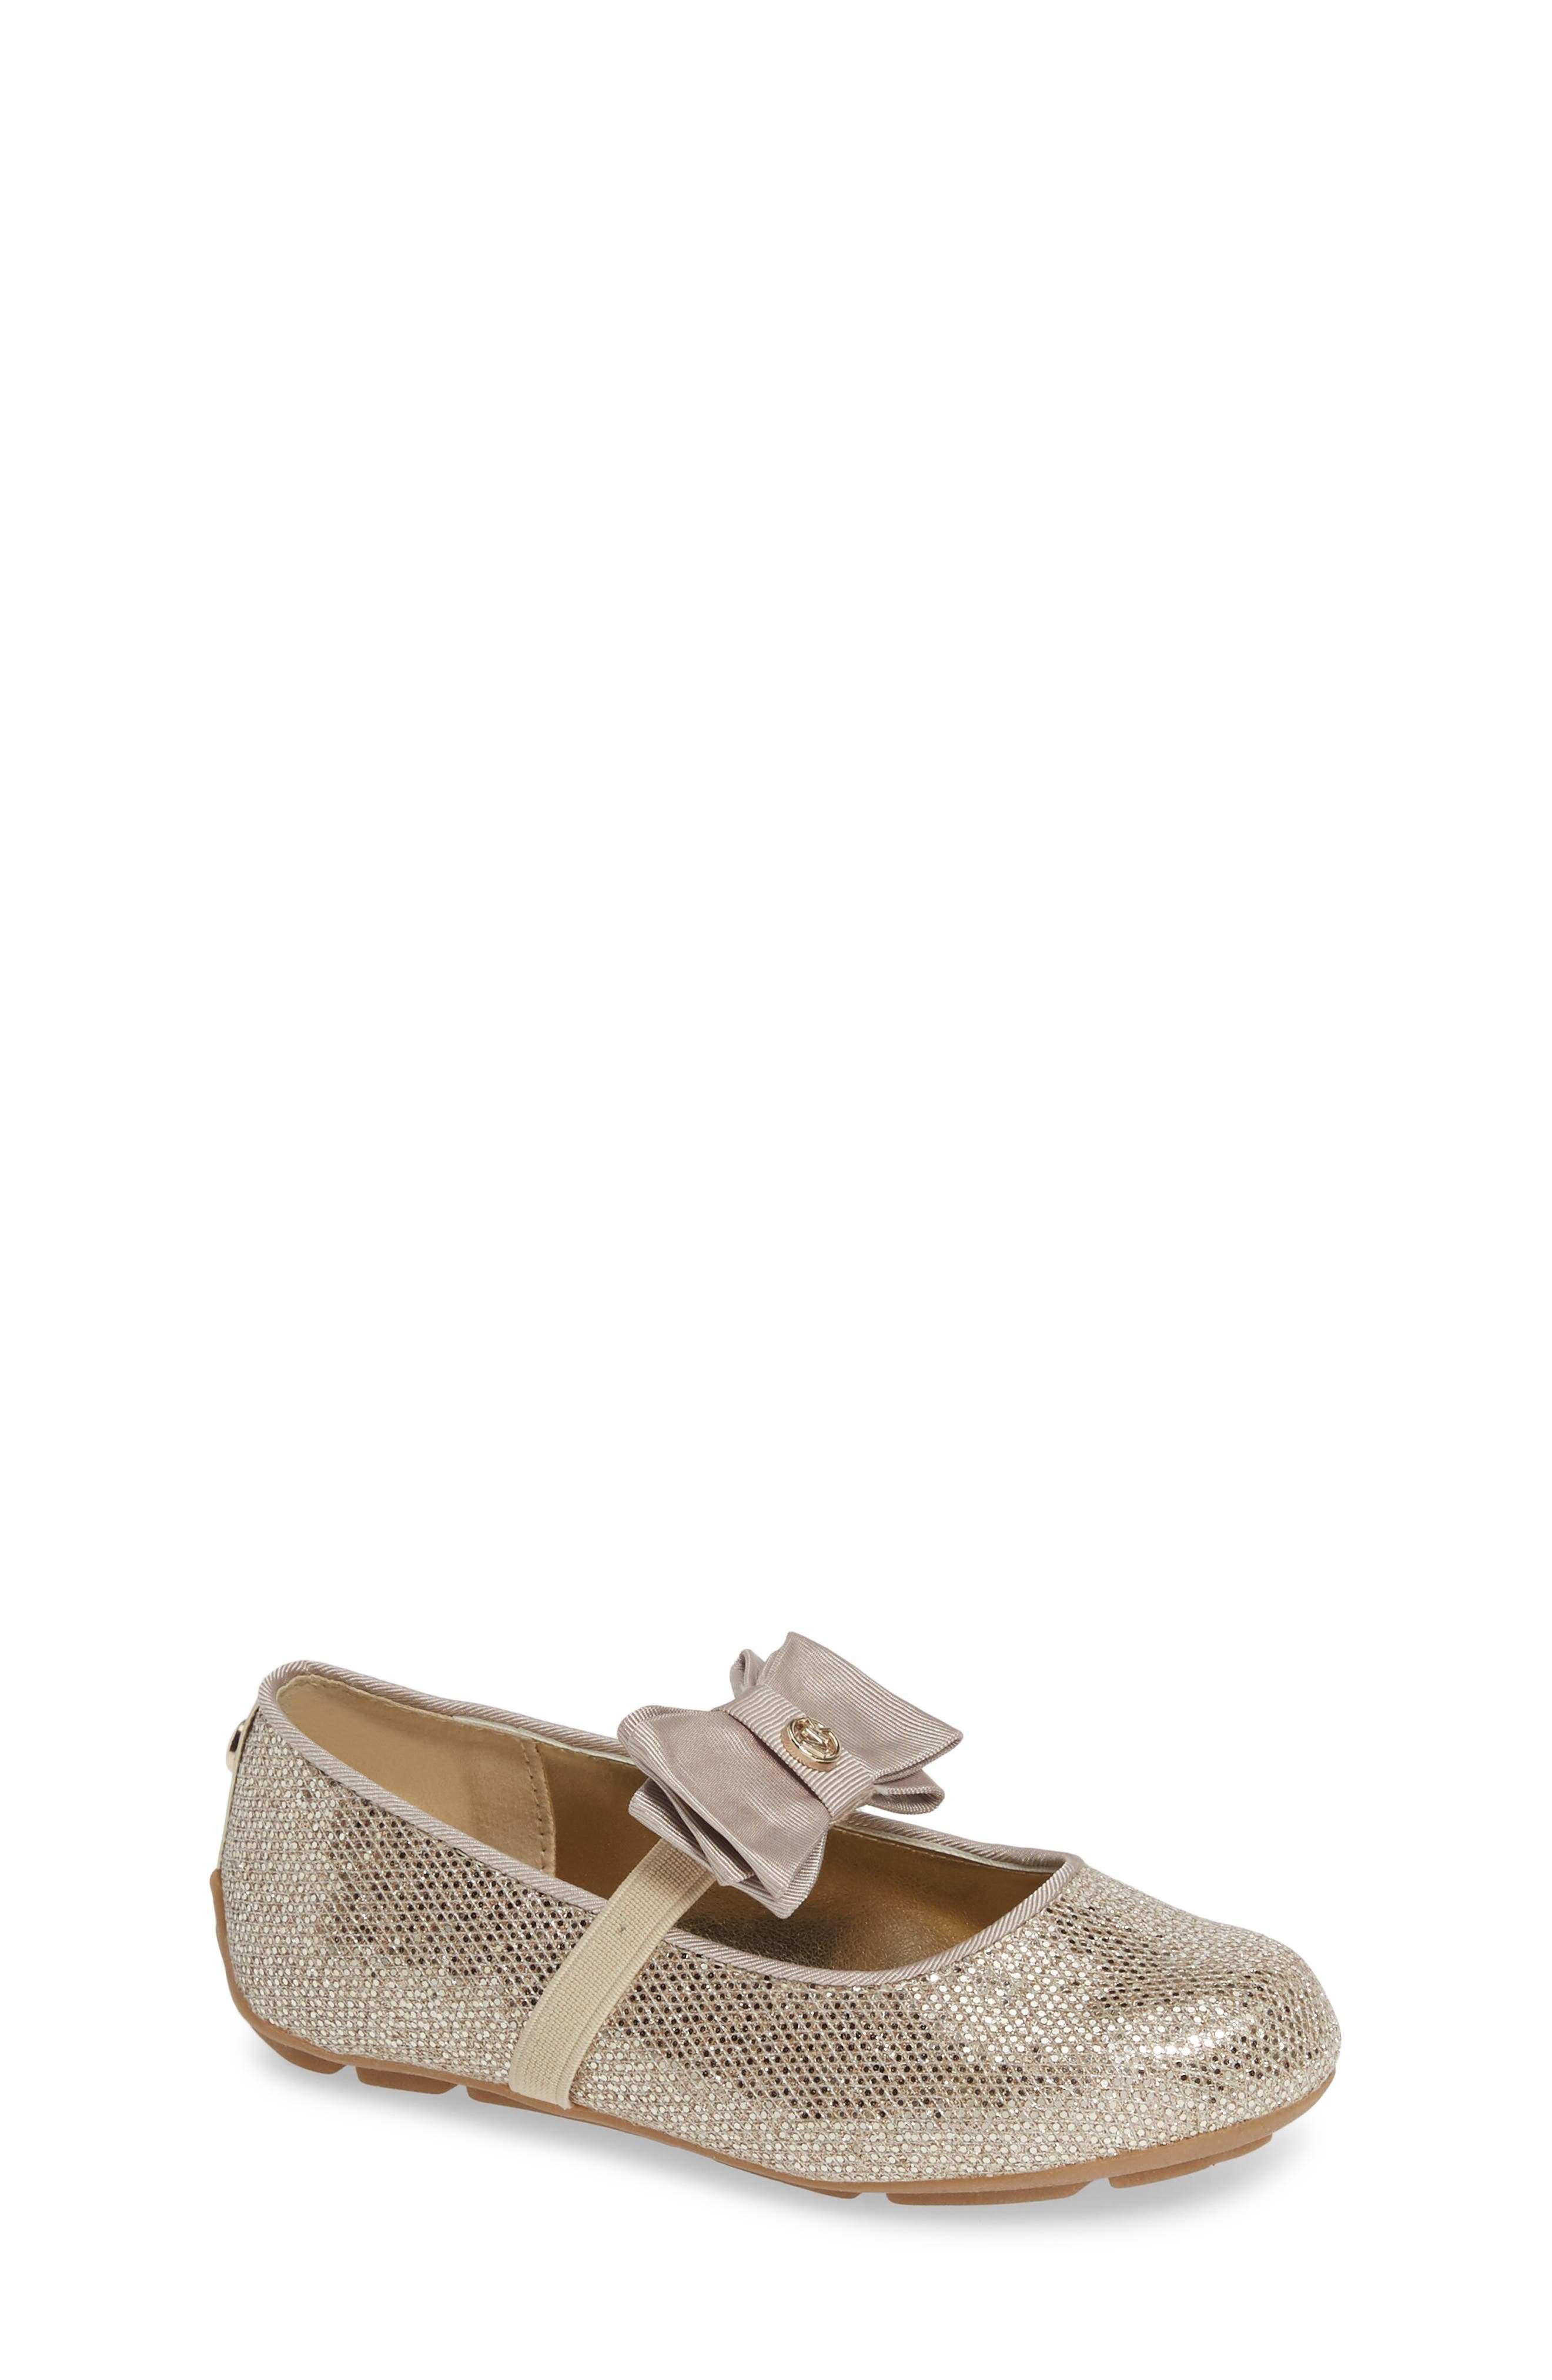 Rover Day Sparkle Ballet Flat, Main, color, SAND